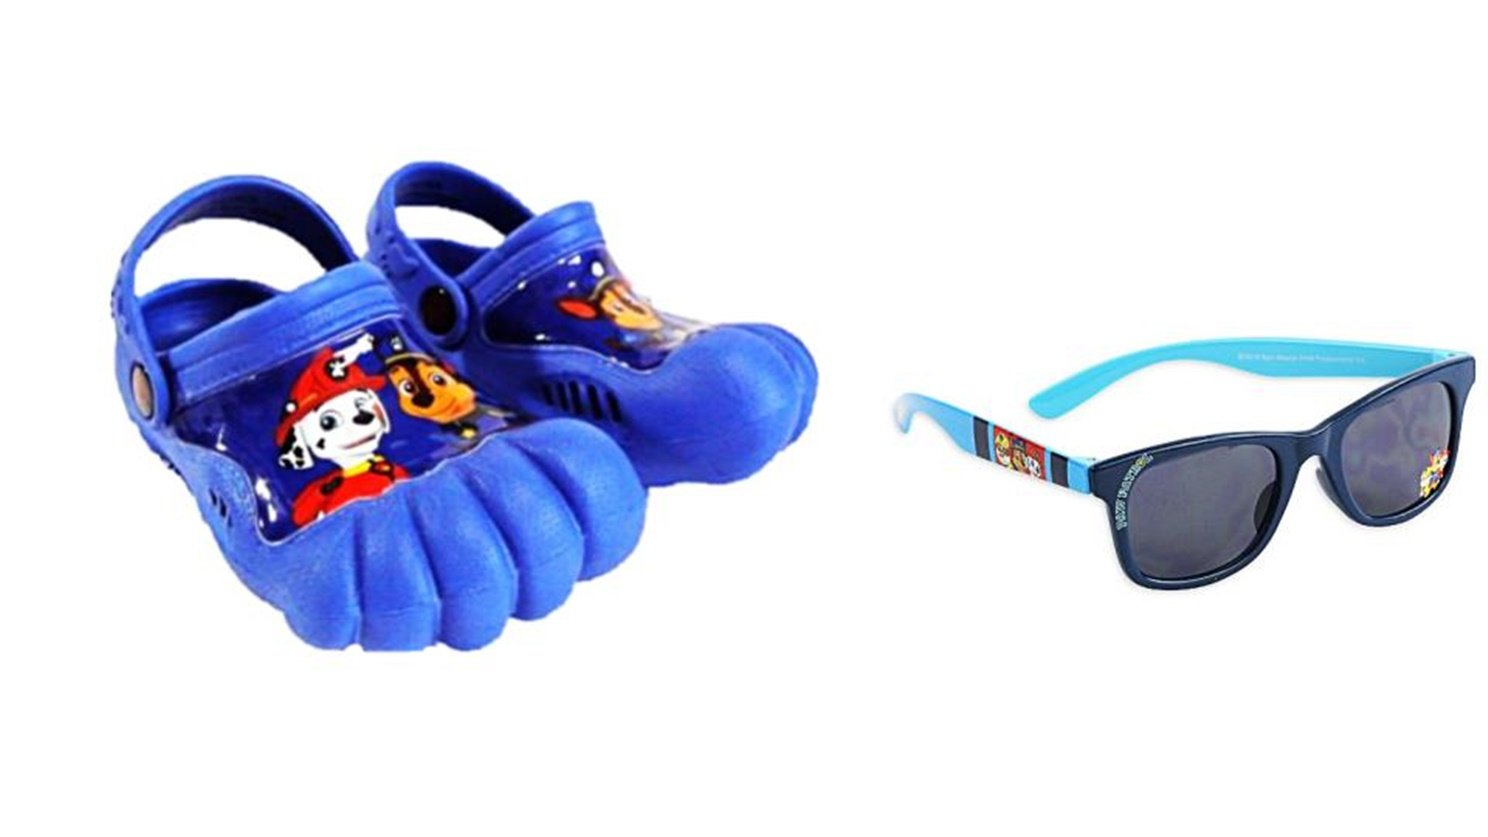 Paw Patrol Toddler Boys Activity Clogs Size Small (5/6) Plus Sunglasses